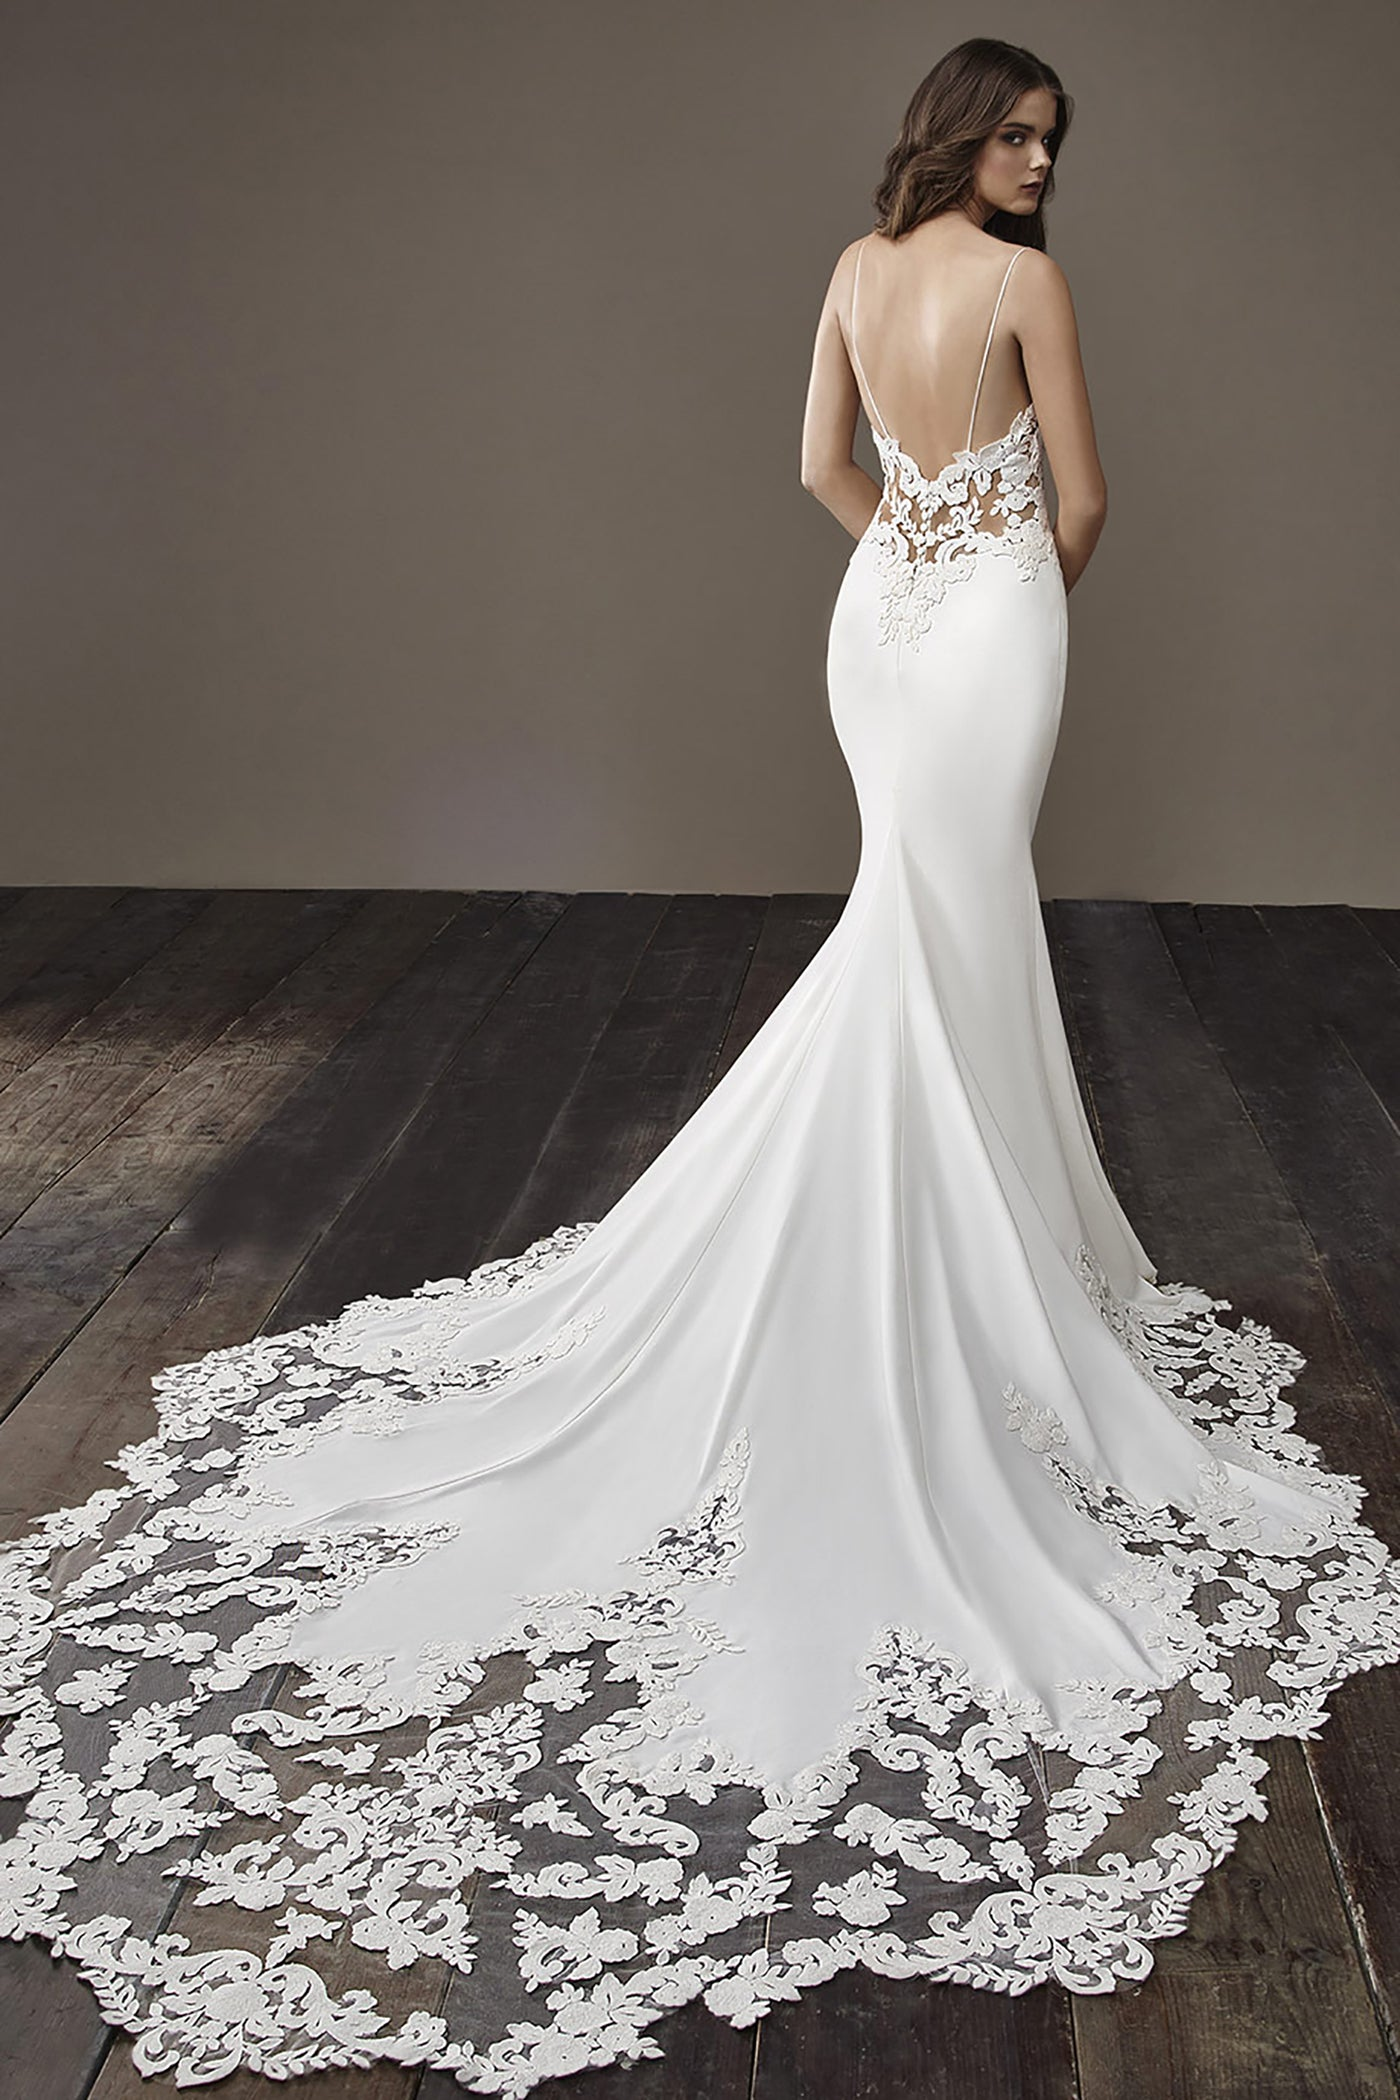 Blake - Gown - Badgley Mischka Bride - Eternal Bridal